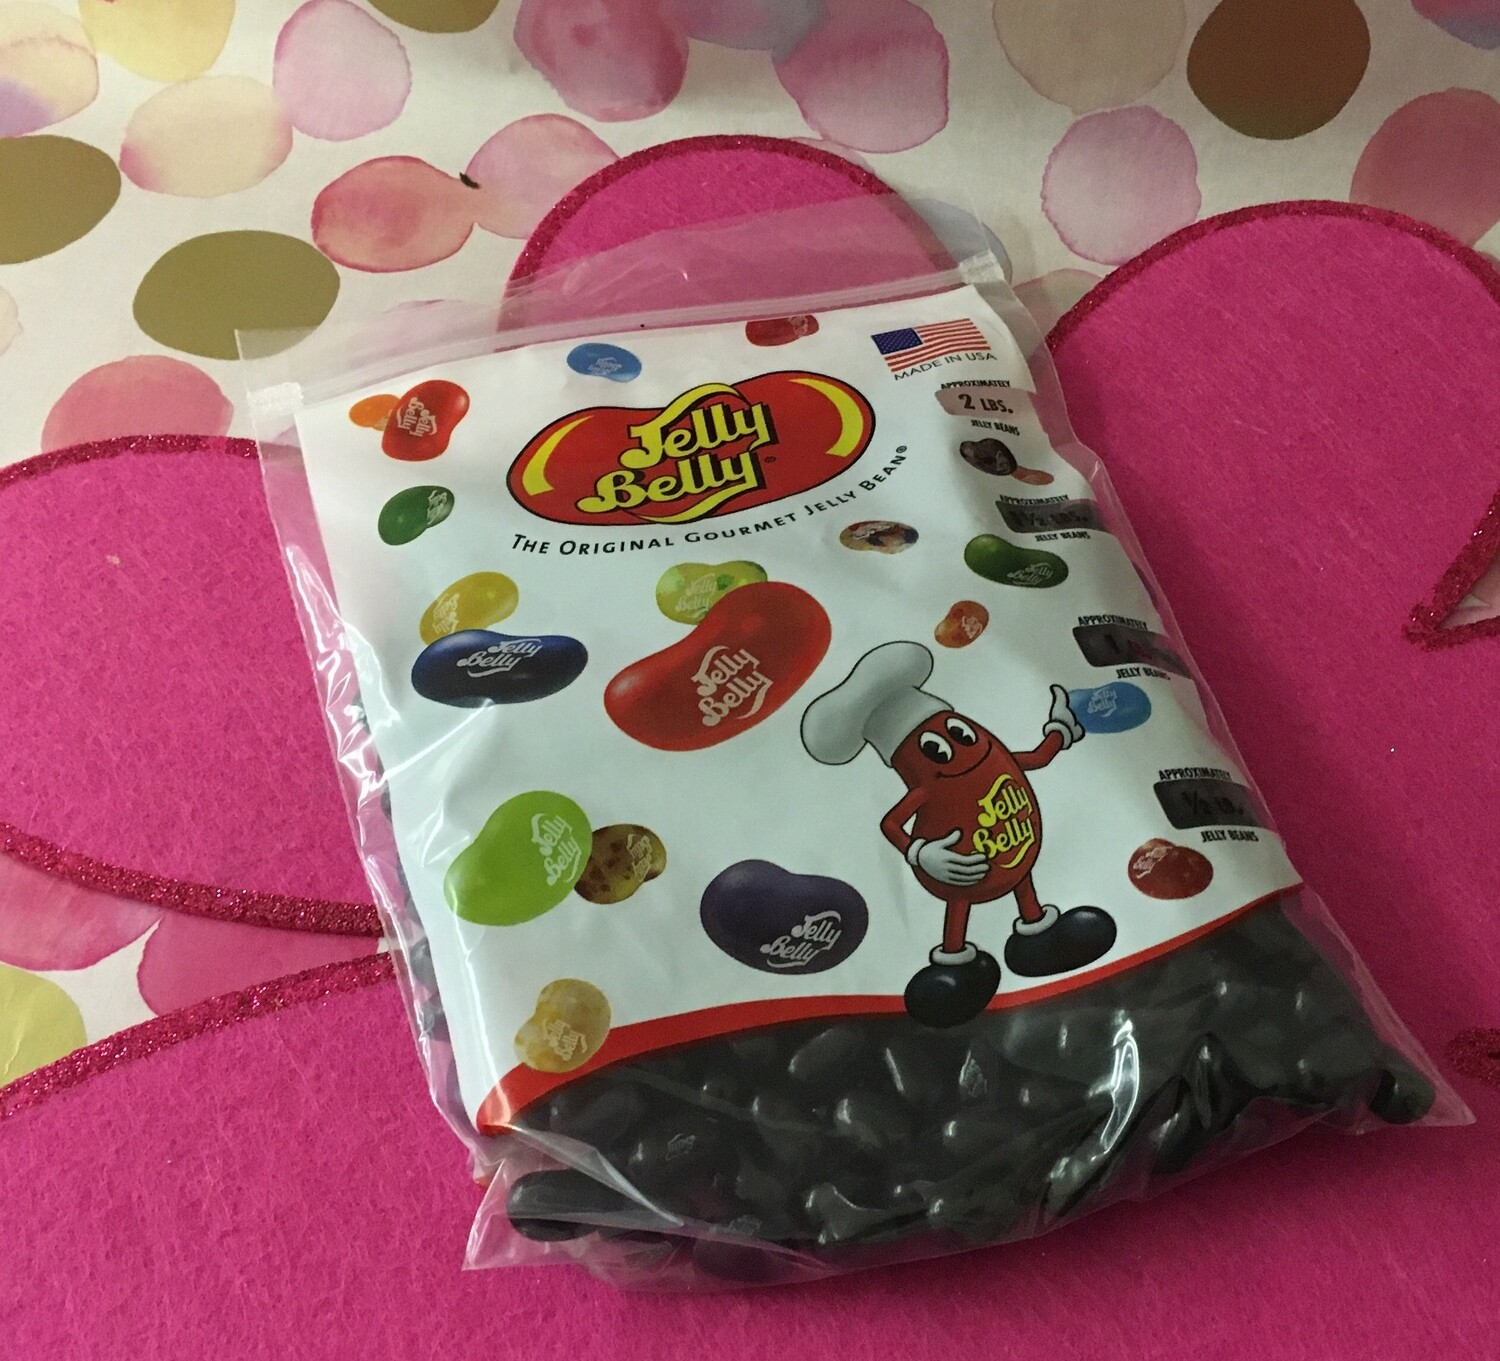 Jelly Belly Licorice (all black jelly belly beans).